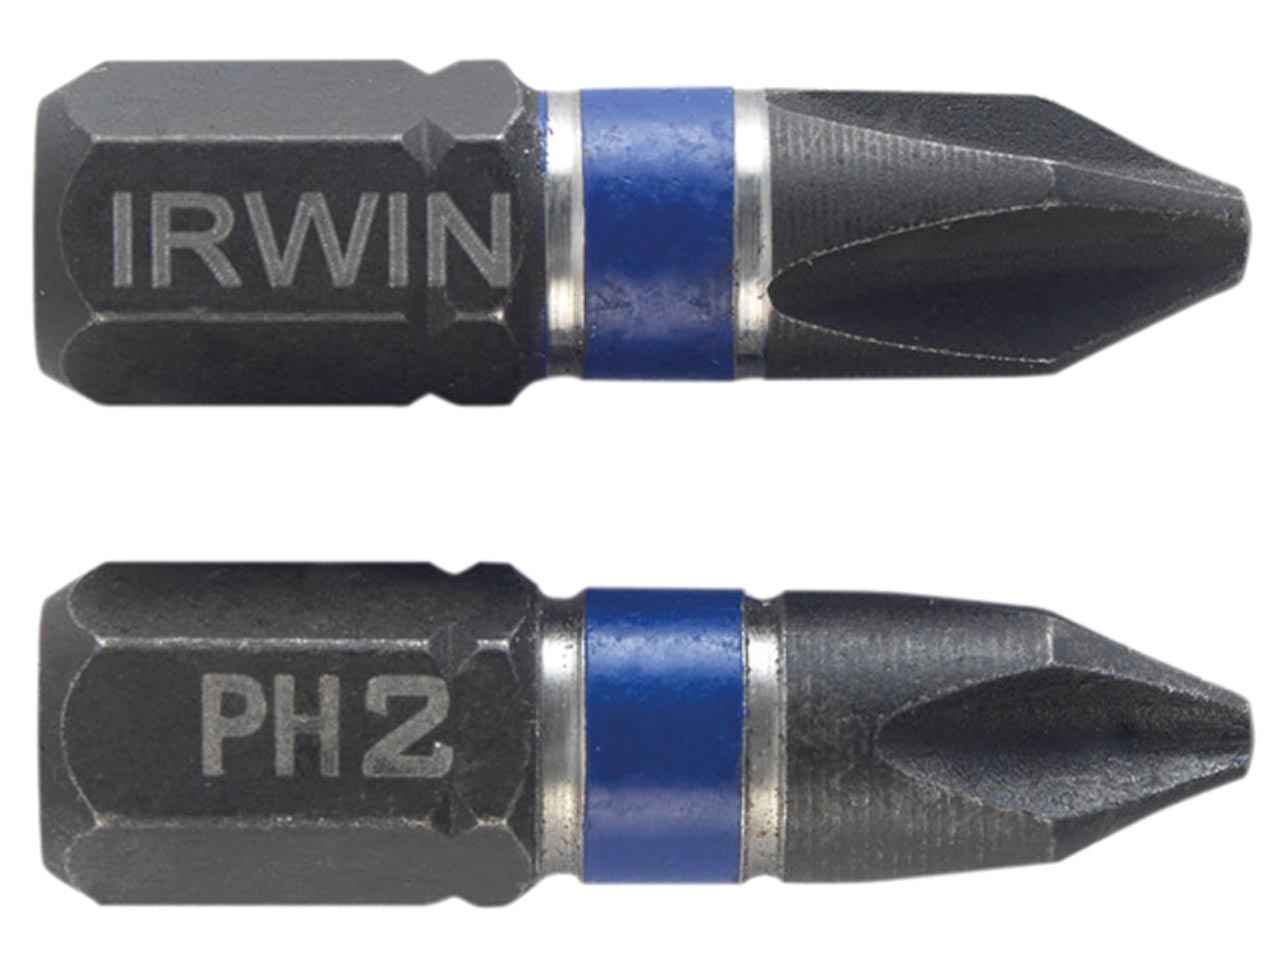 IRWIN 1923322 Impact Screwdriver Bits Phillips PH2 50mm Pack of 2